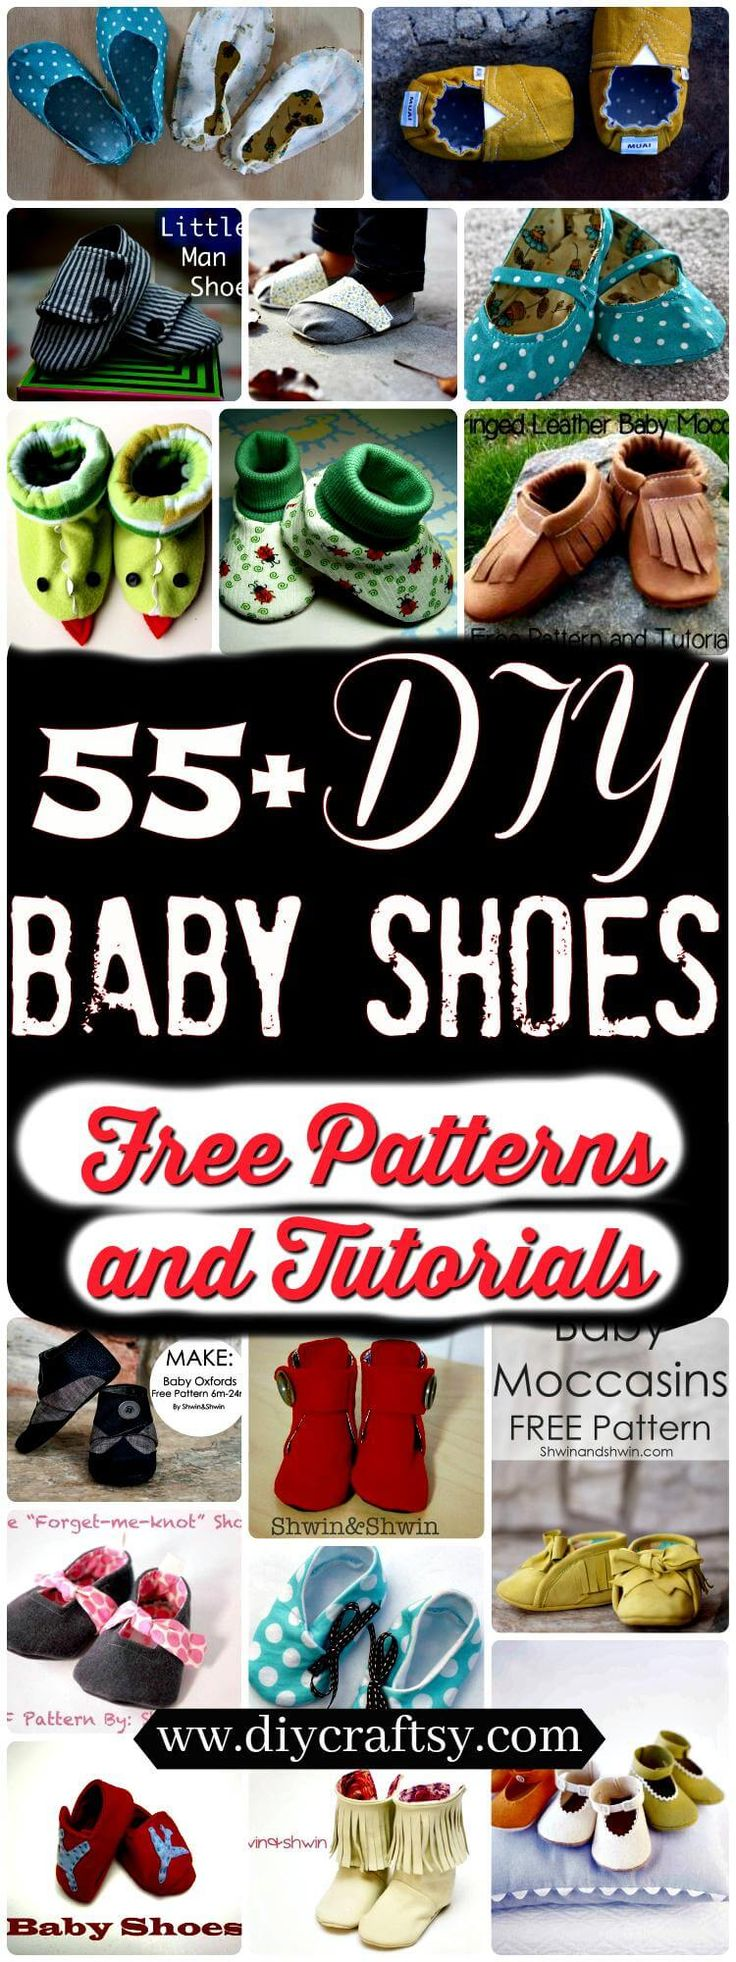 12 best Baby booties images on Pinterest | Sewing patterns, Baby ...